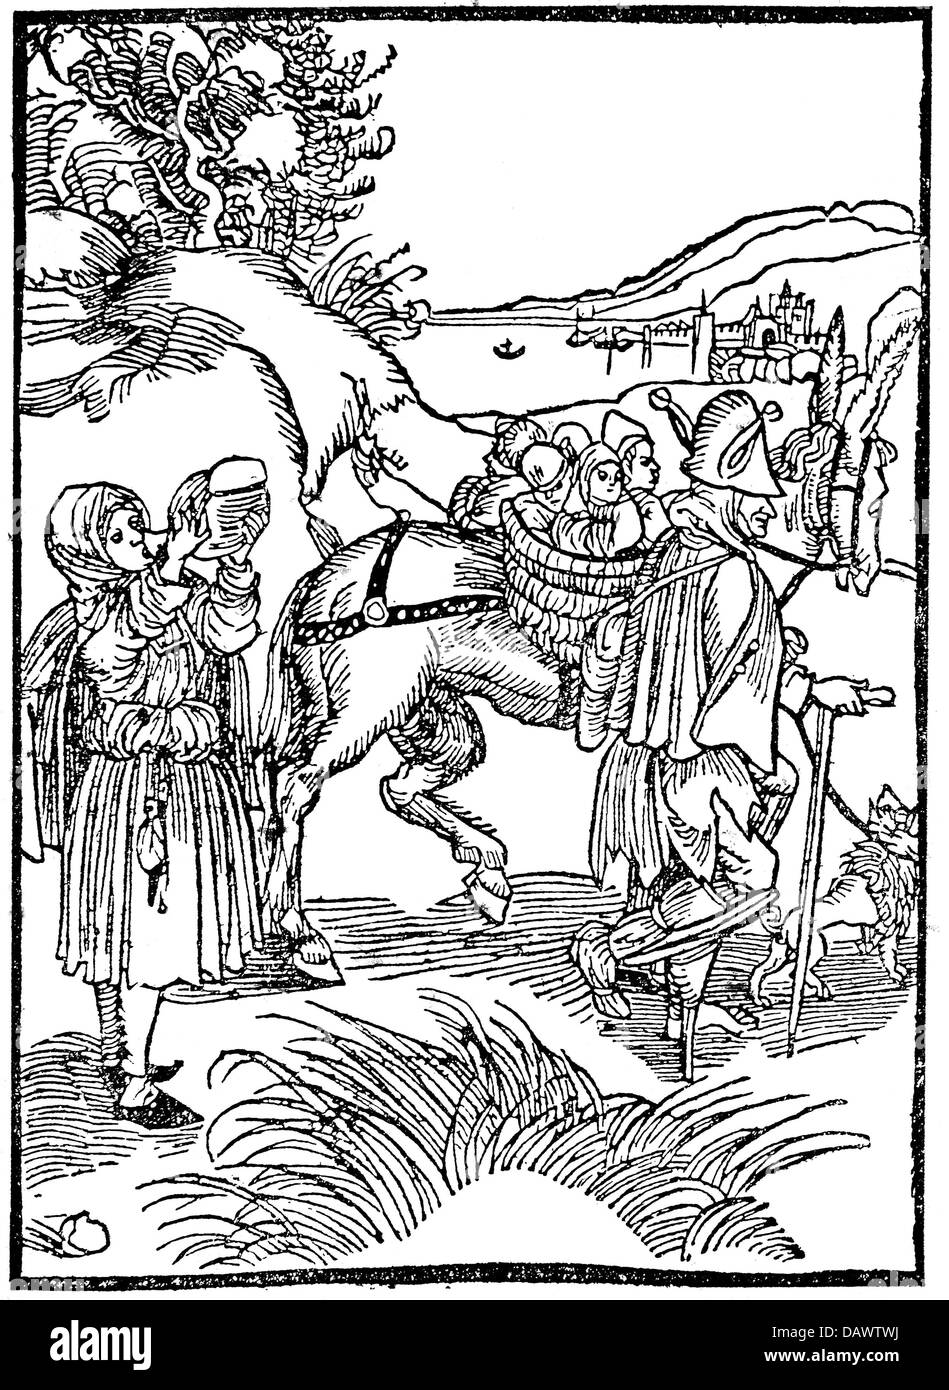 people, poverty / hardship / adversity, beggar family with many children, woodcut, illustration from the 'Ship - Stock Image